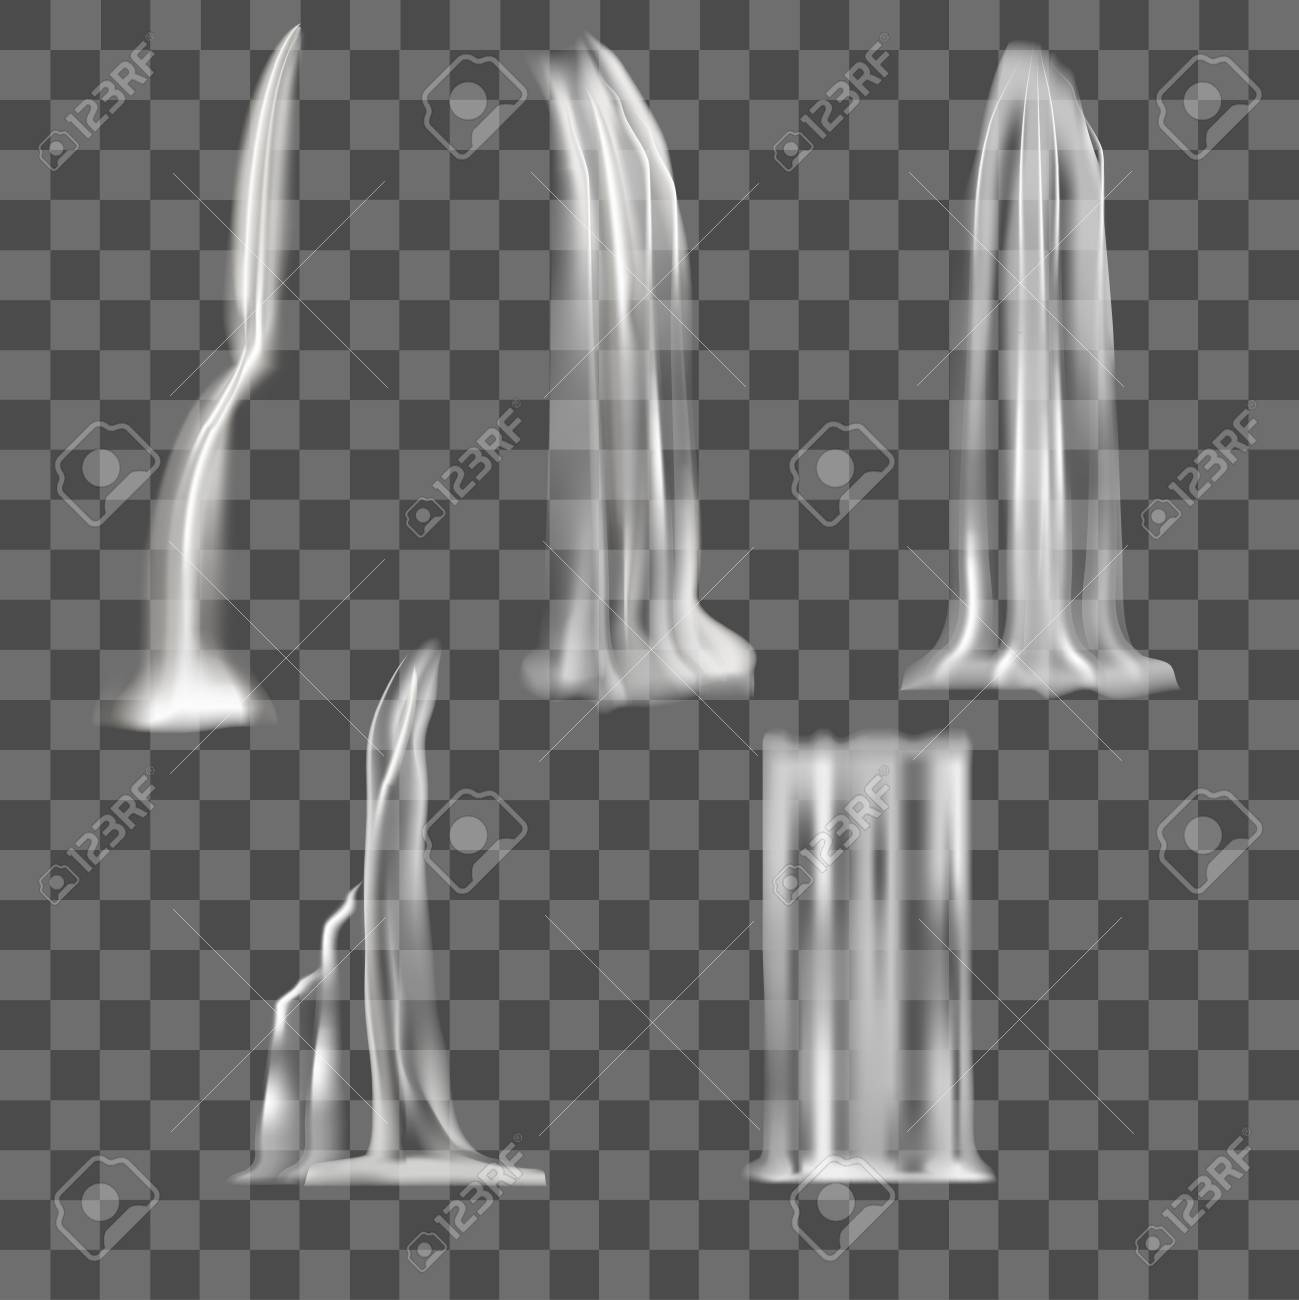 Realistic Detailed 3d Waterfall Elements Set. Vector - 90511909